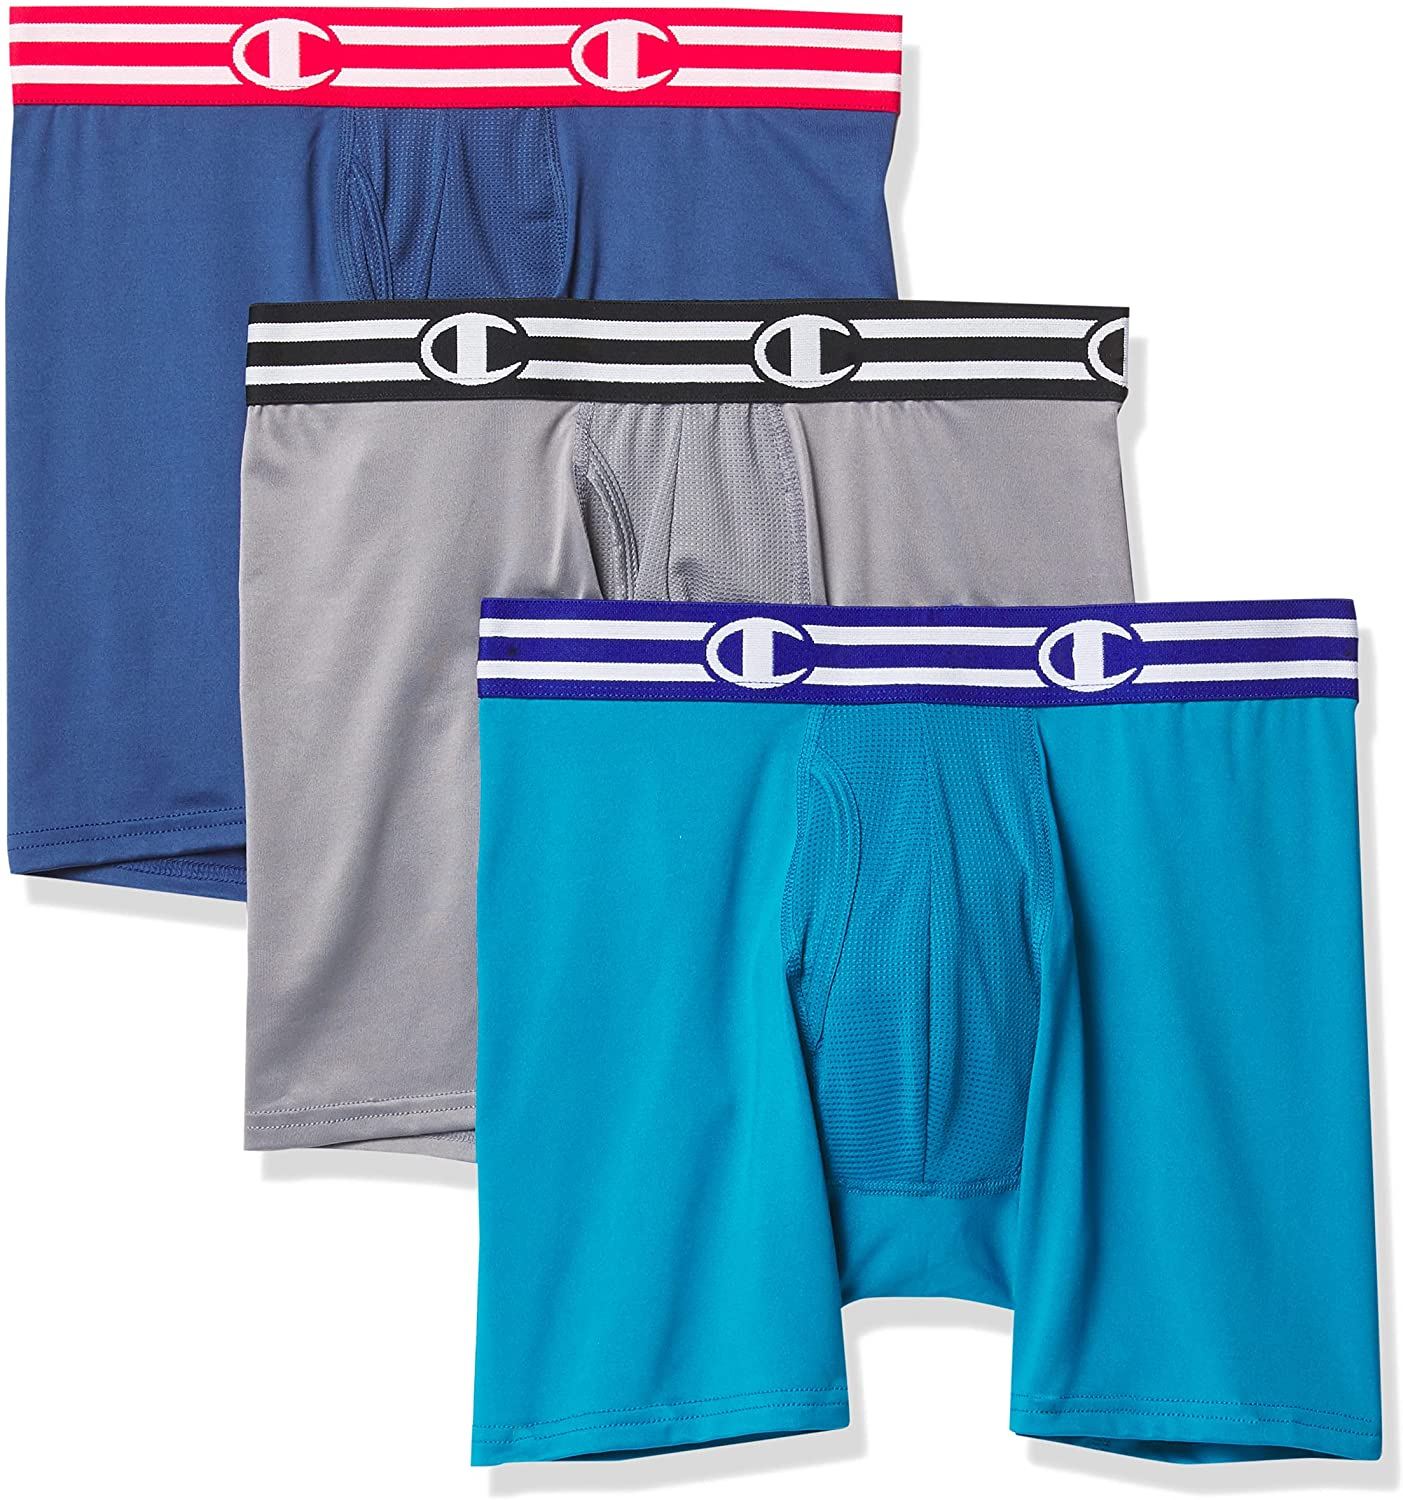 Champion Men's Performance Boxer Brief (Pack of 3)